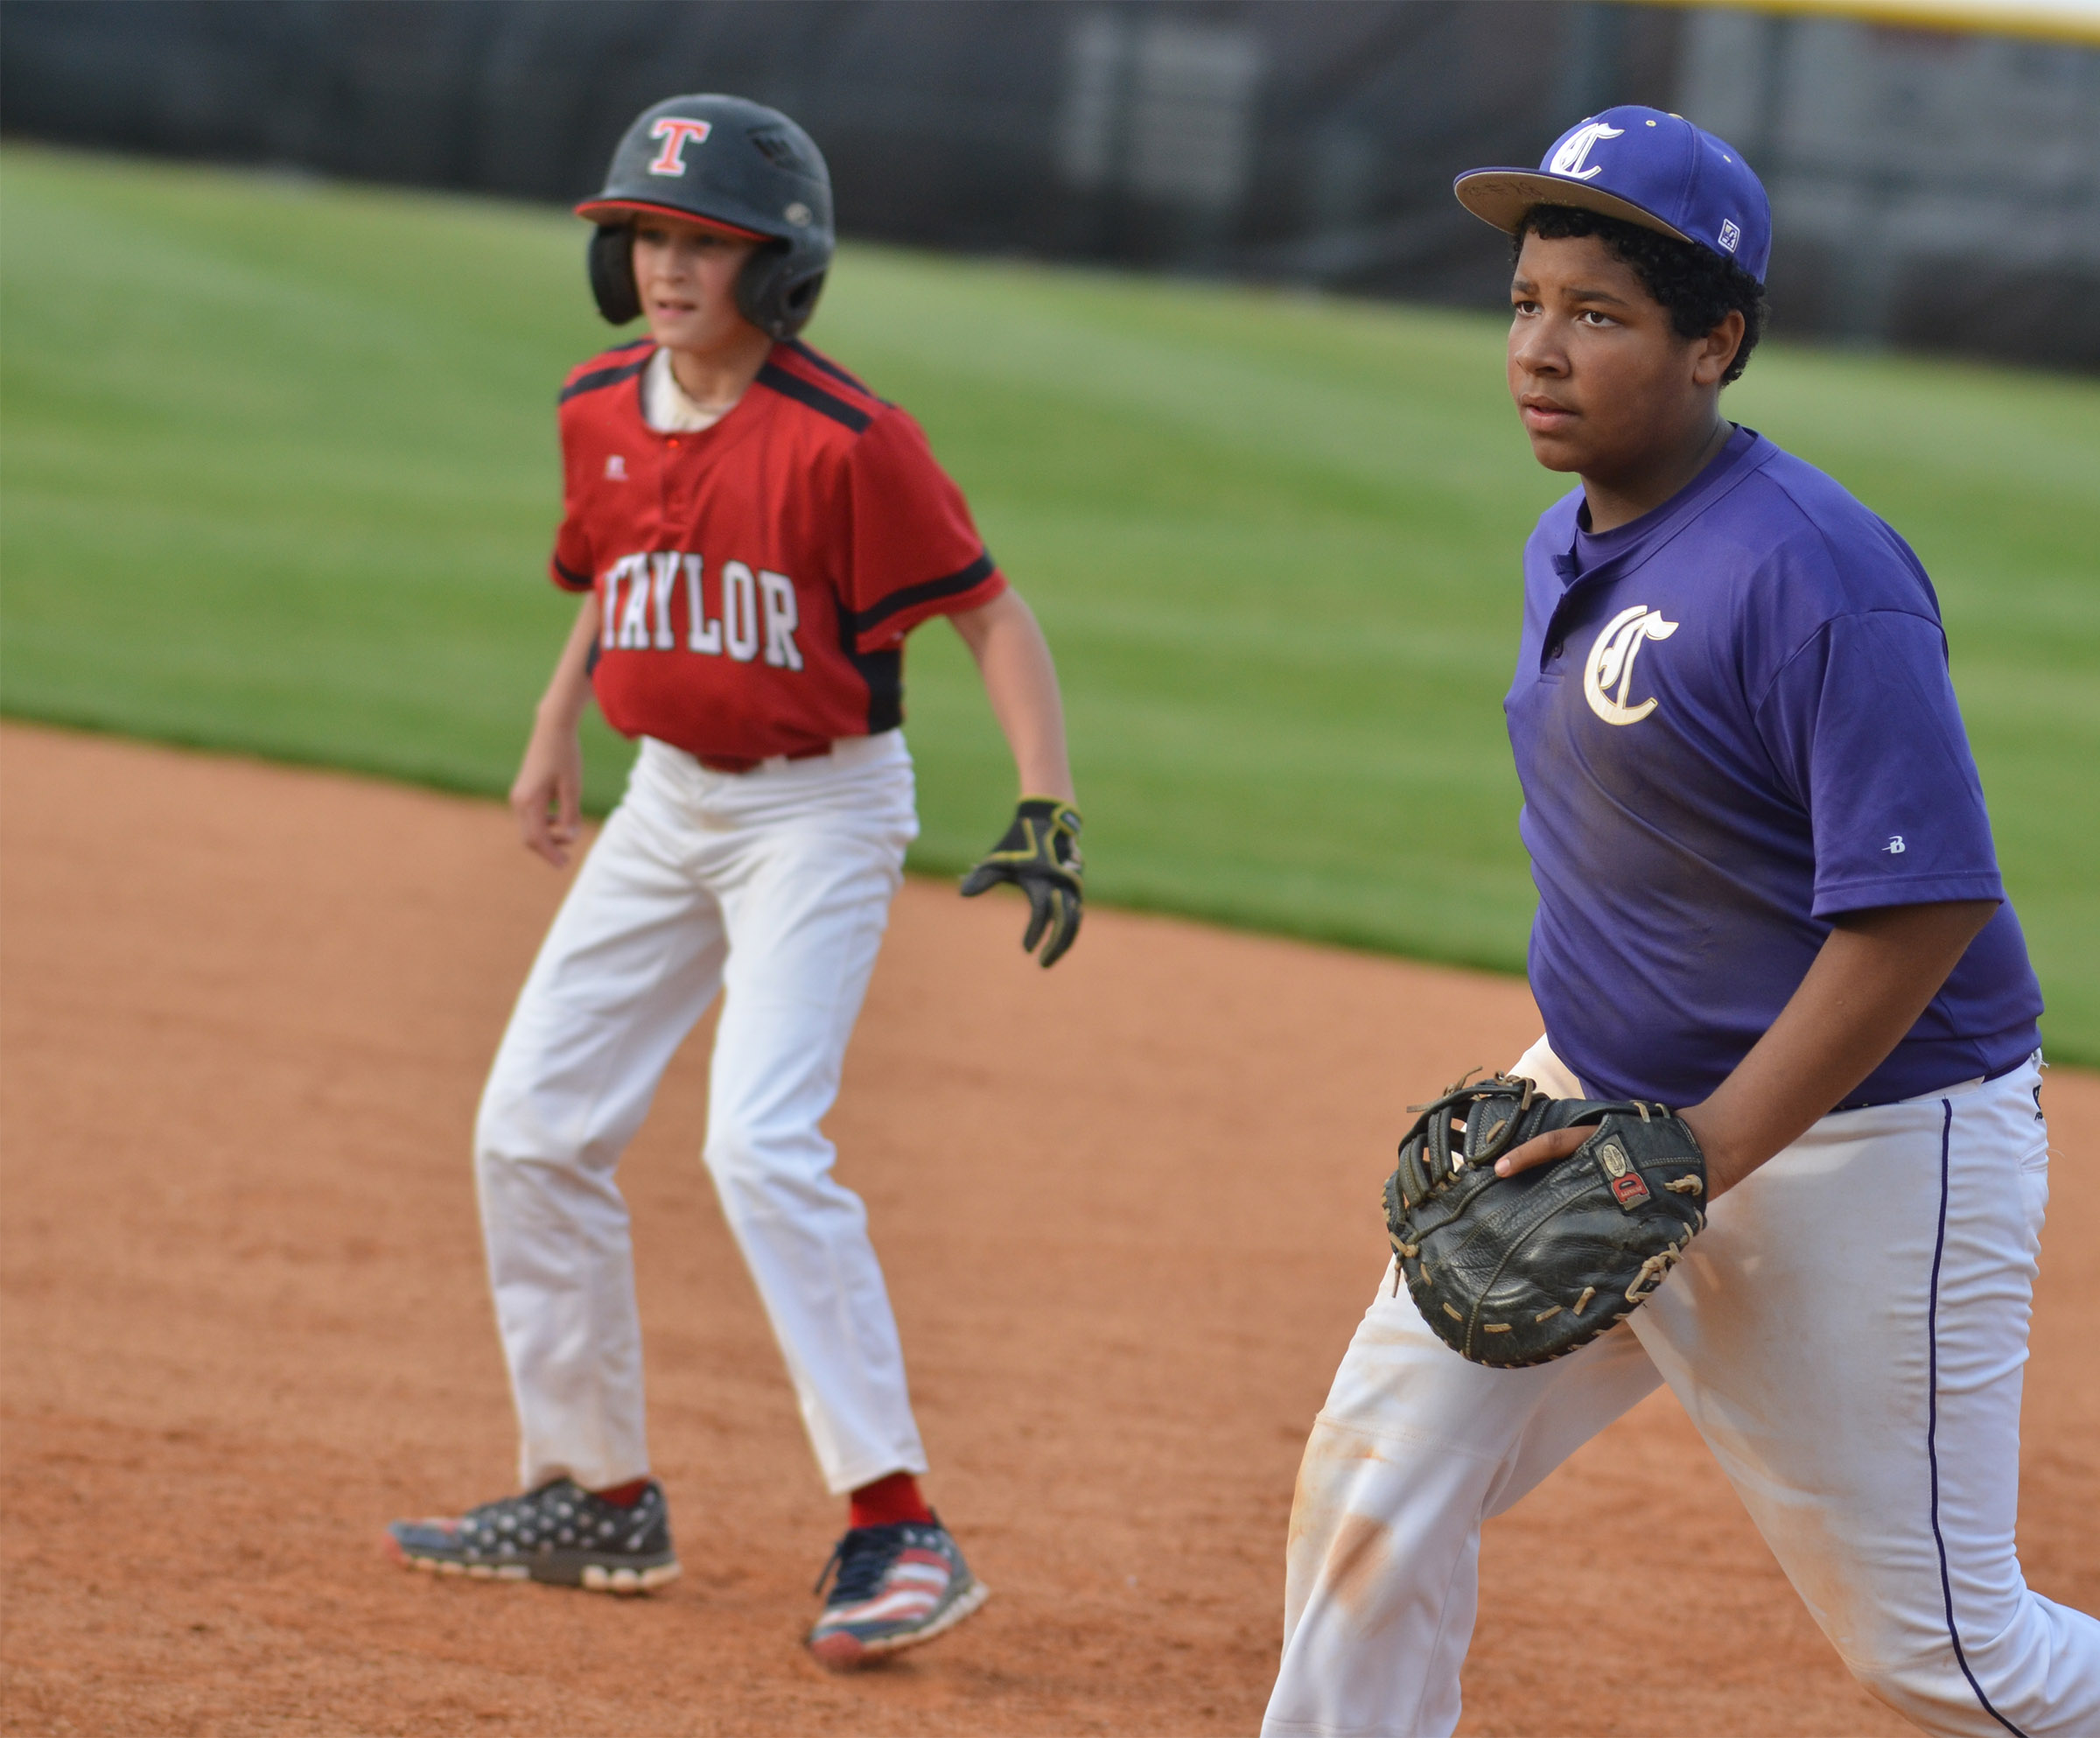 CMS seventh-grader Bryson Karr keeps the runner close to first base.